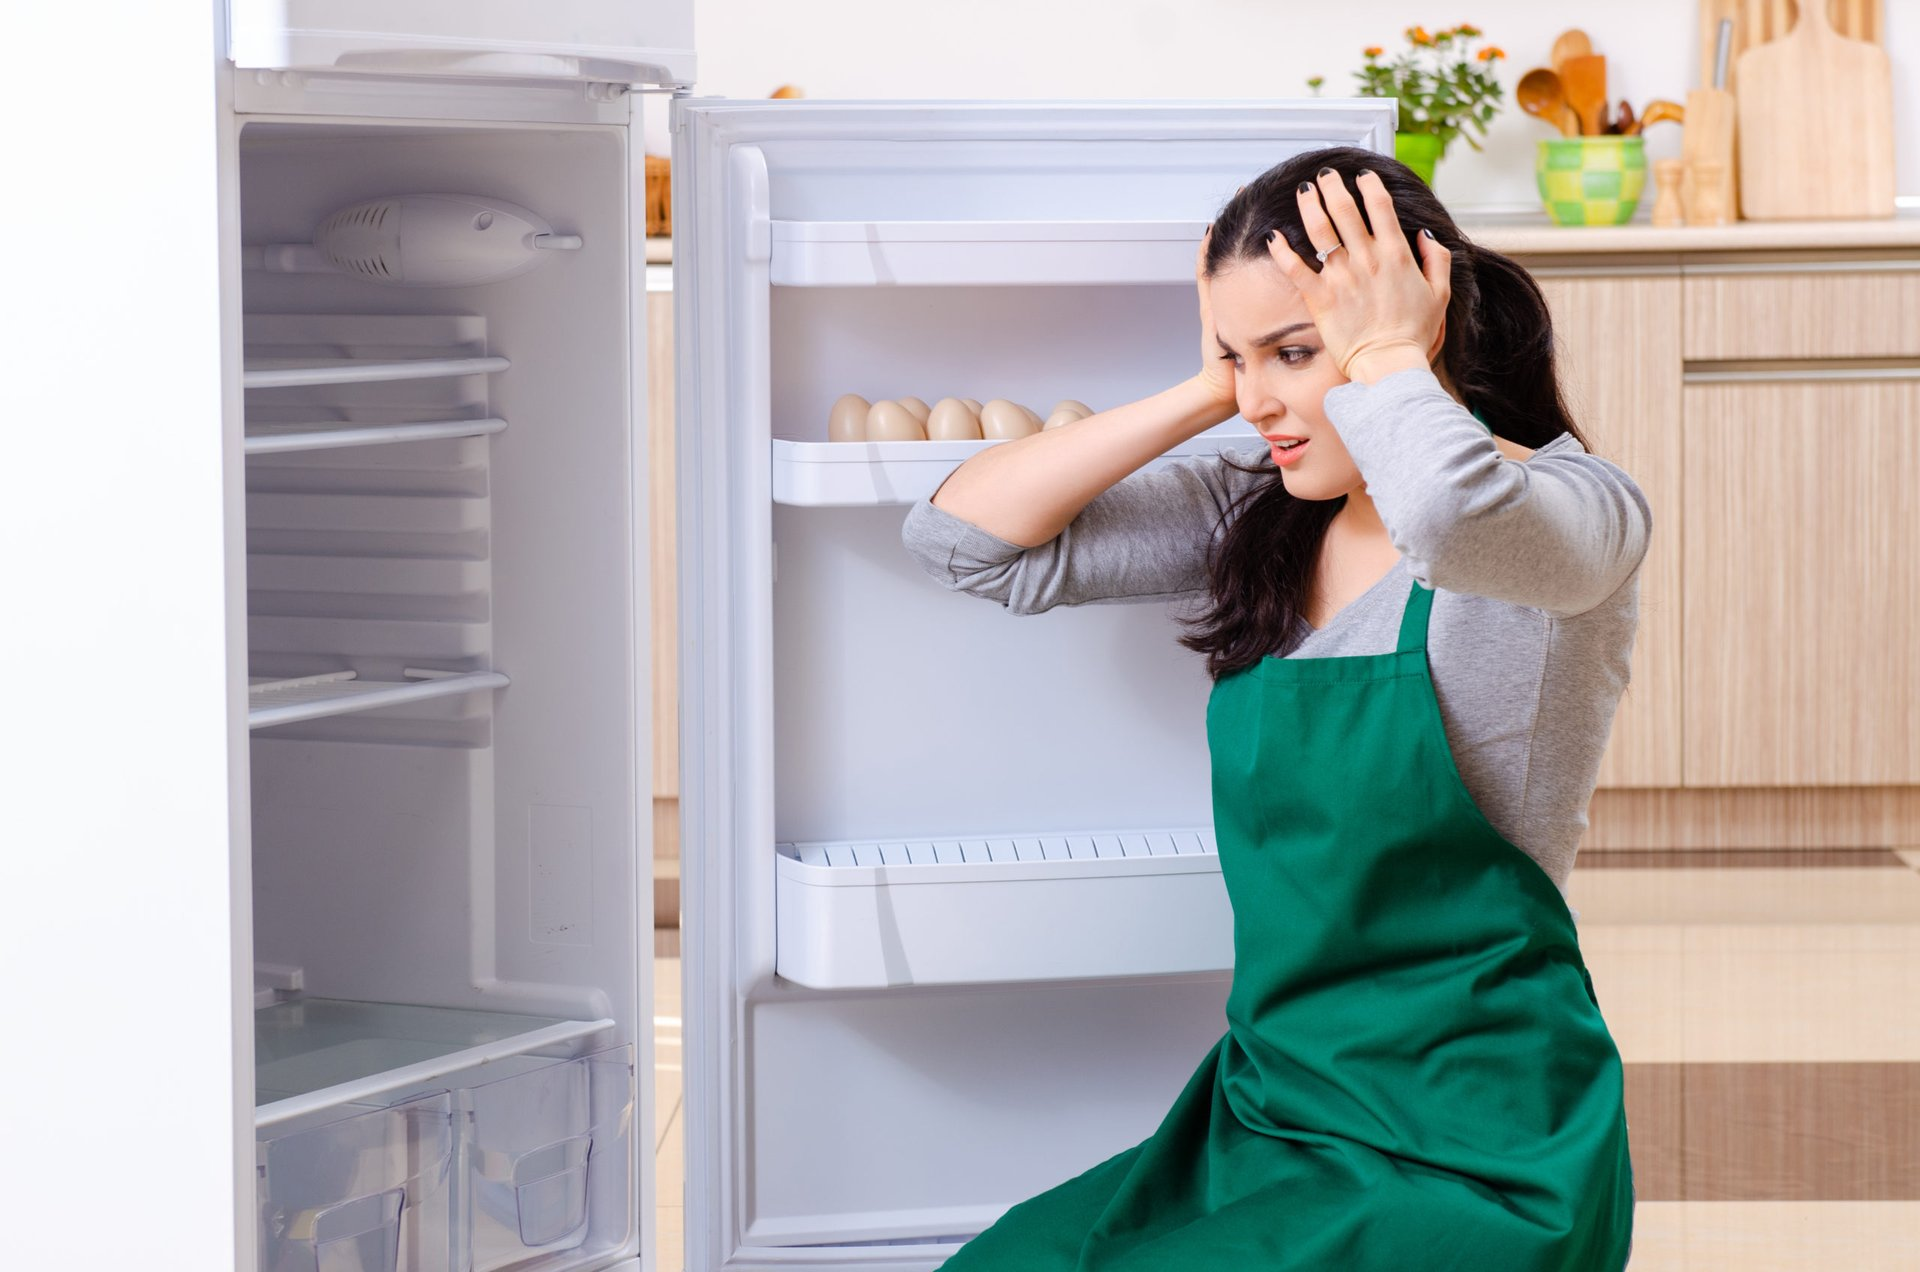 A woman is upset after damaging her fridge with vinegar